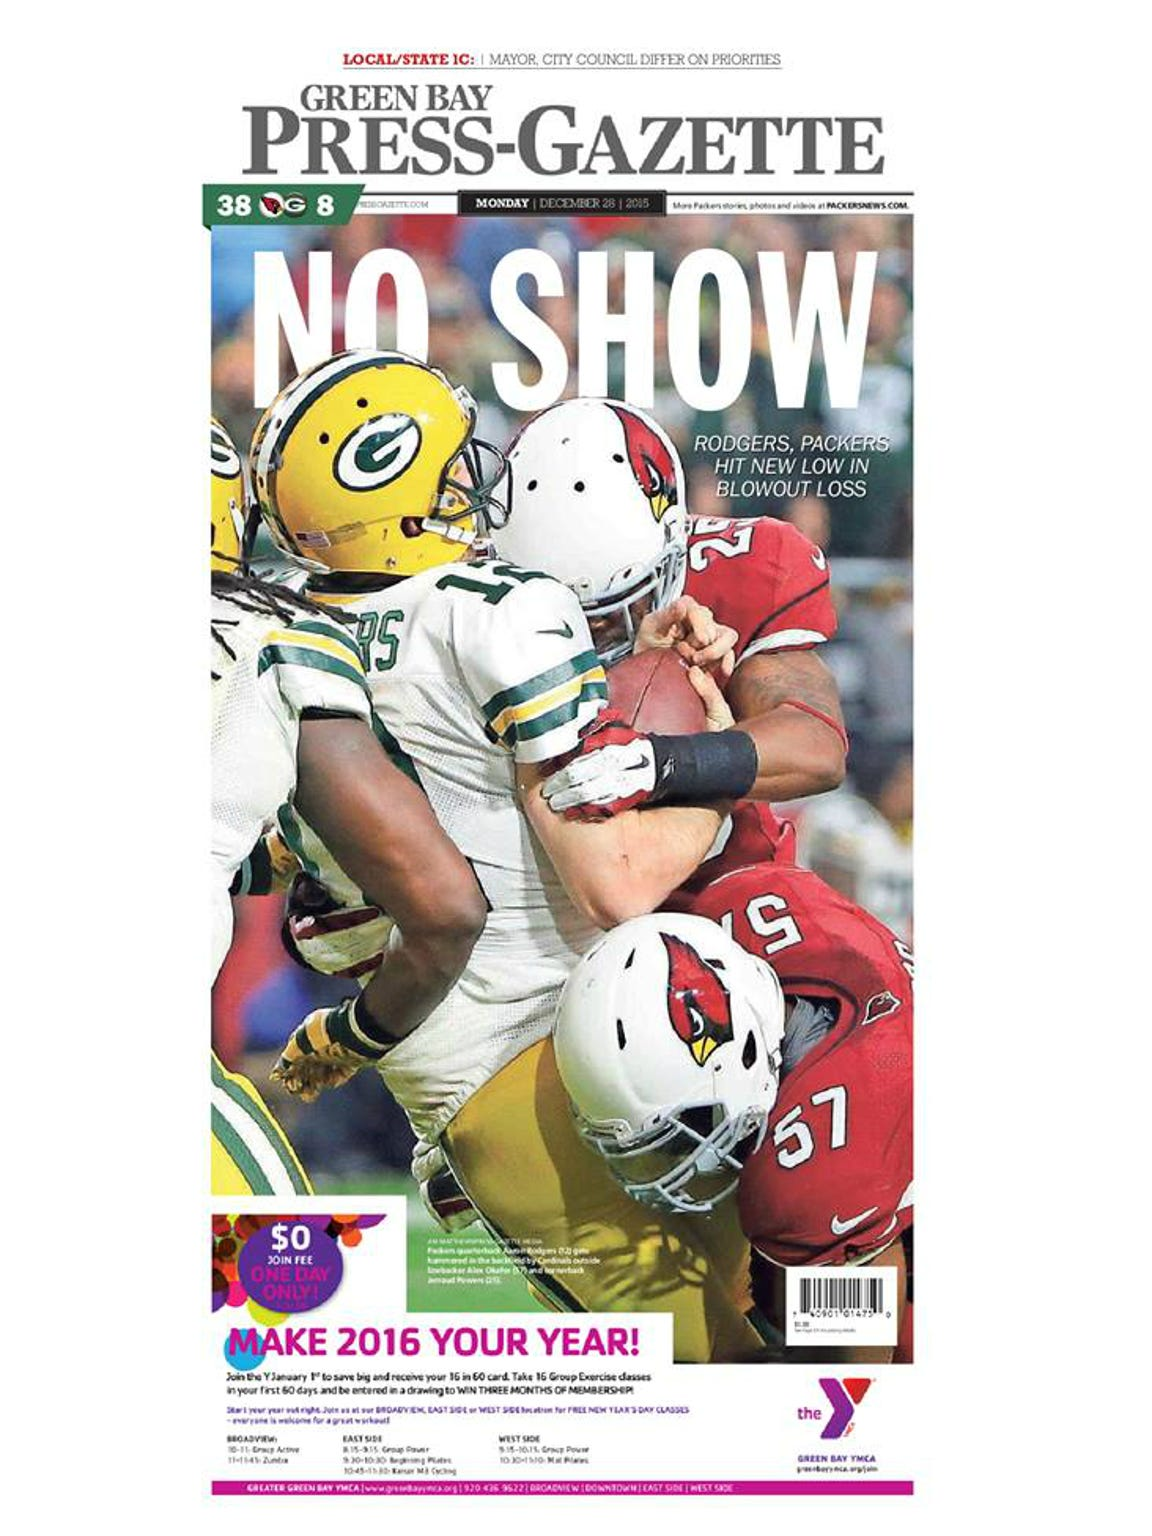 Game 15: Cardinals 38, Packers 8